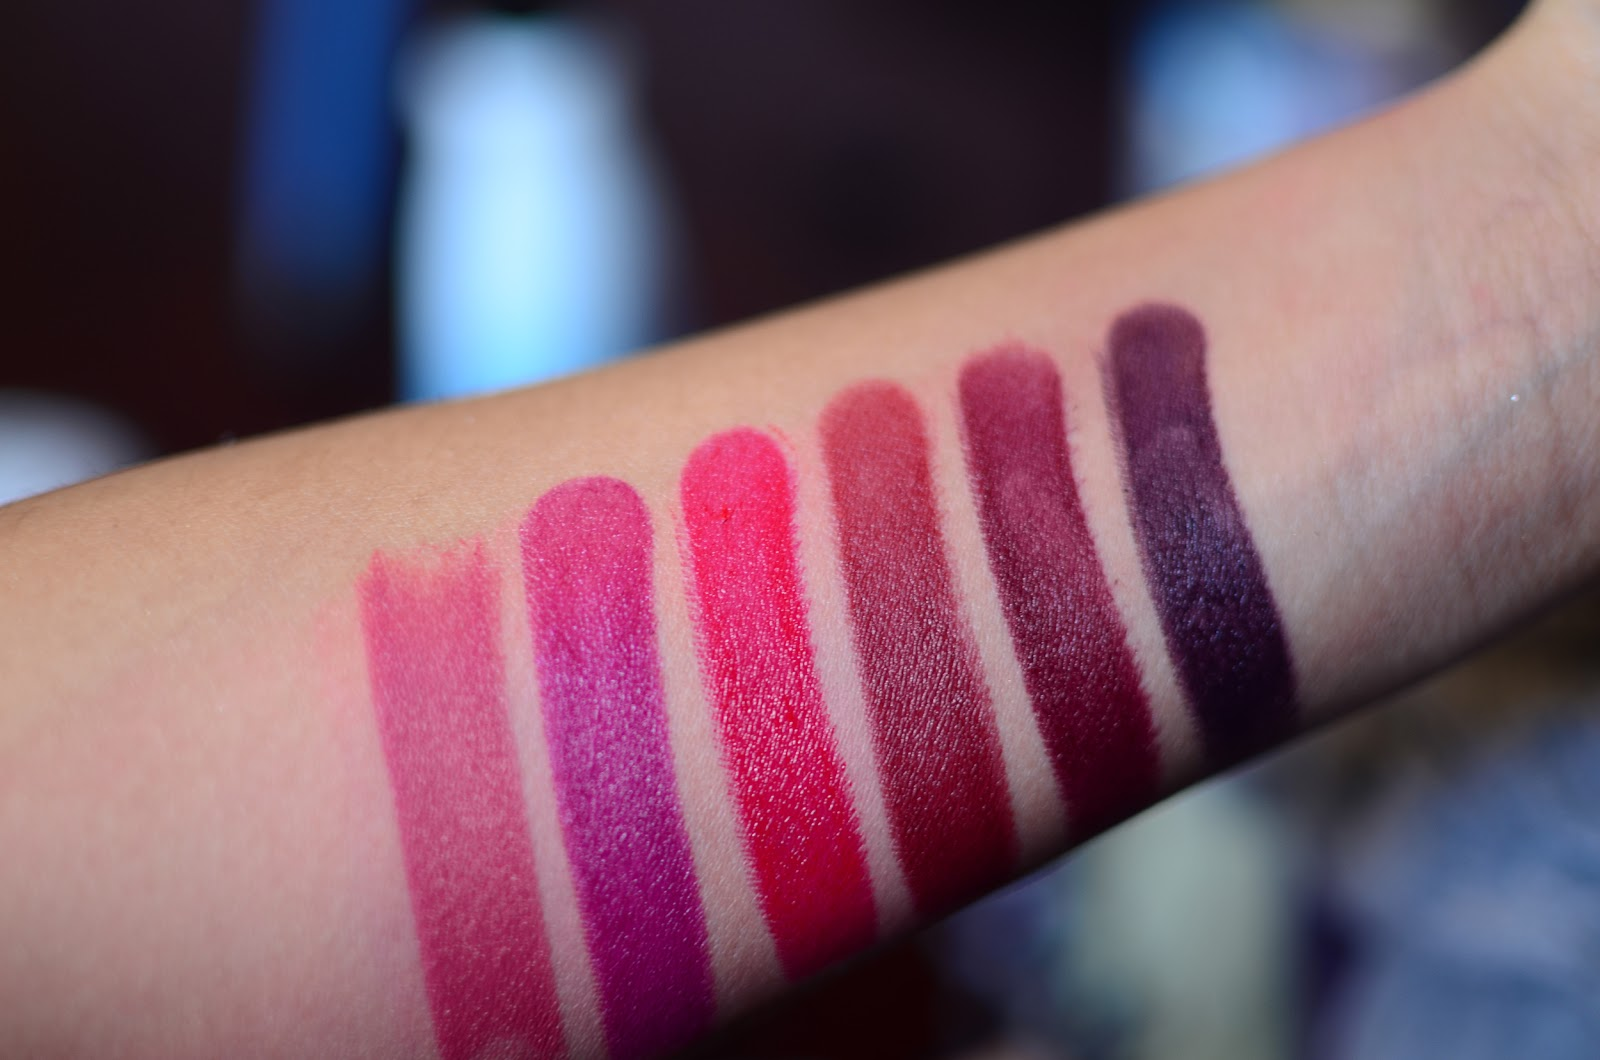 fun size beauty: Wet n Wild Mega Last Lip Colors #3 in Spiked with ...